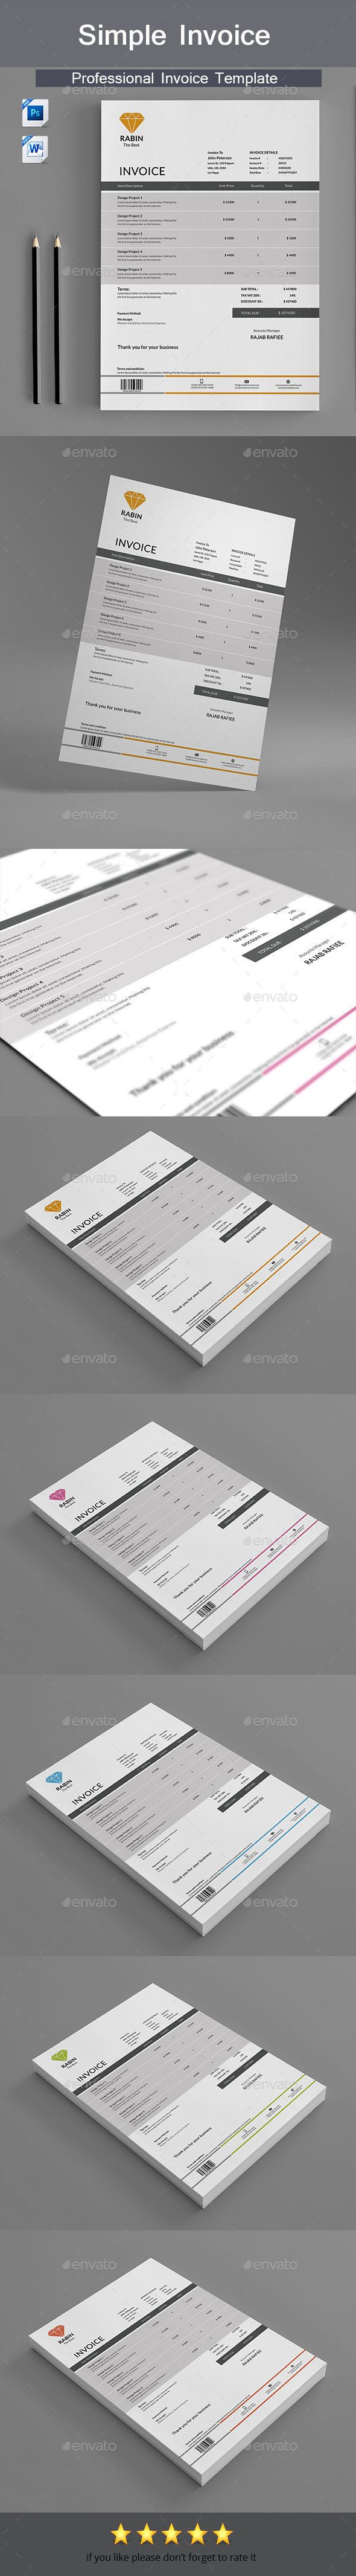 Invoice by RealisticArt A professional and sharp